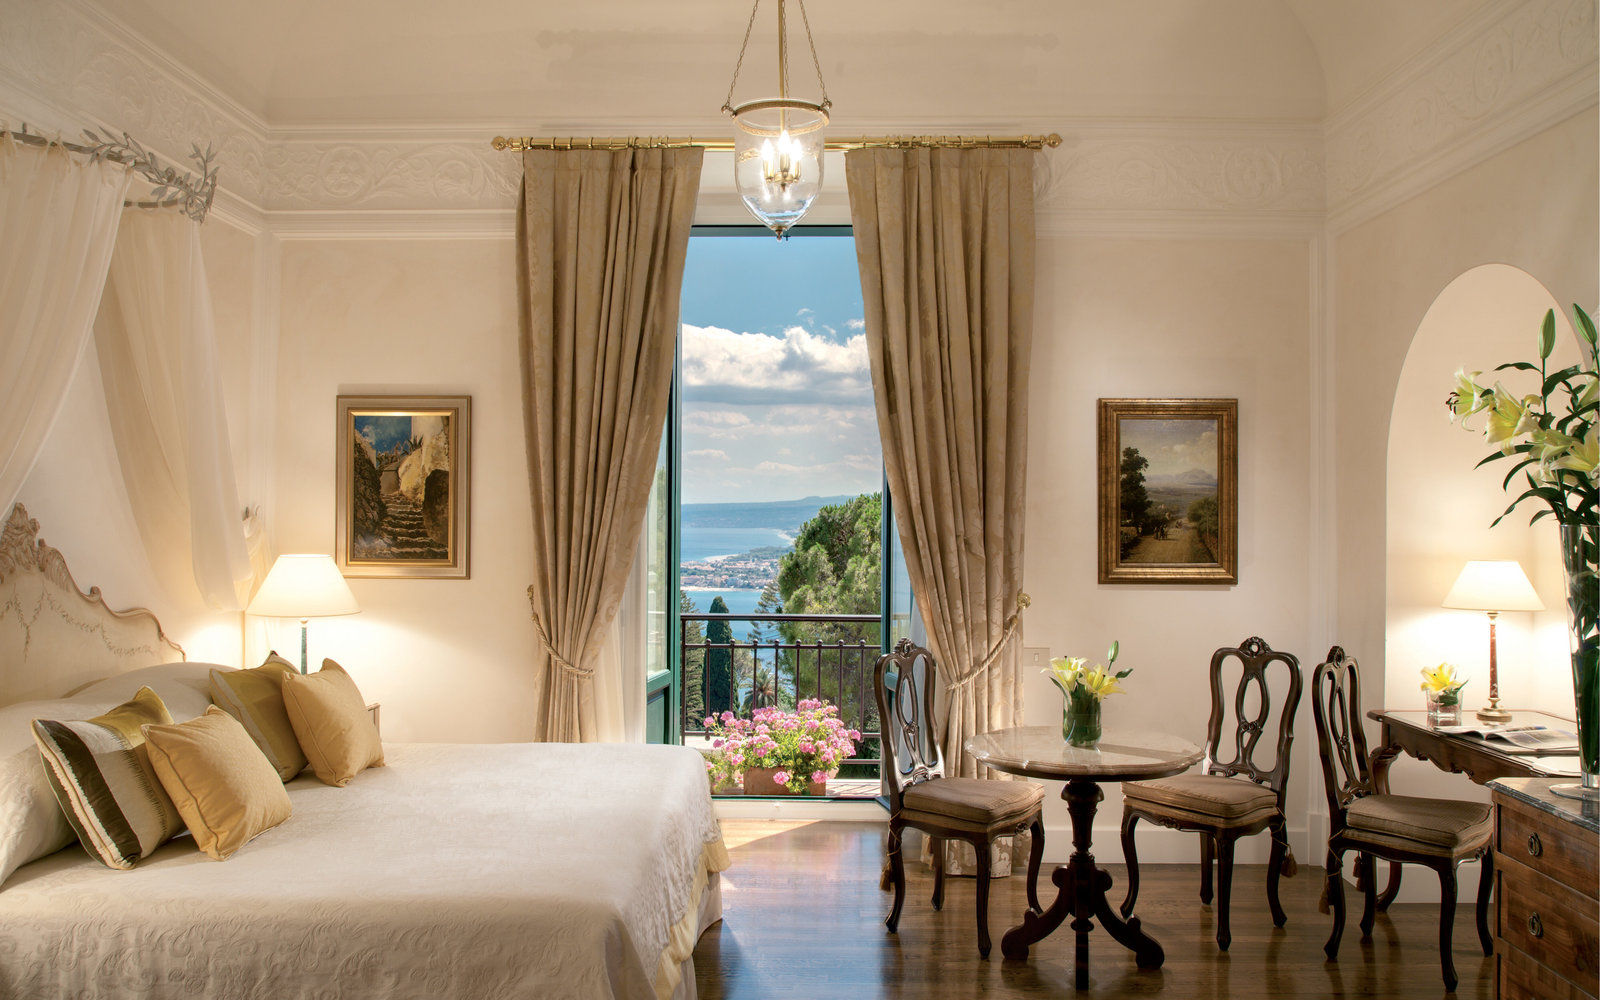 No. 10: Belmond Grand Hotel Timeo